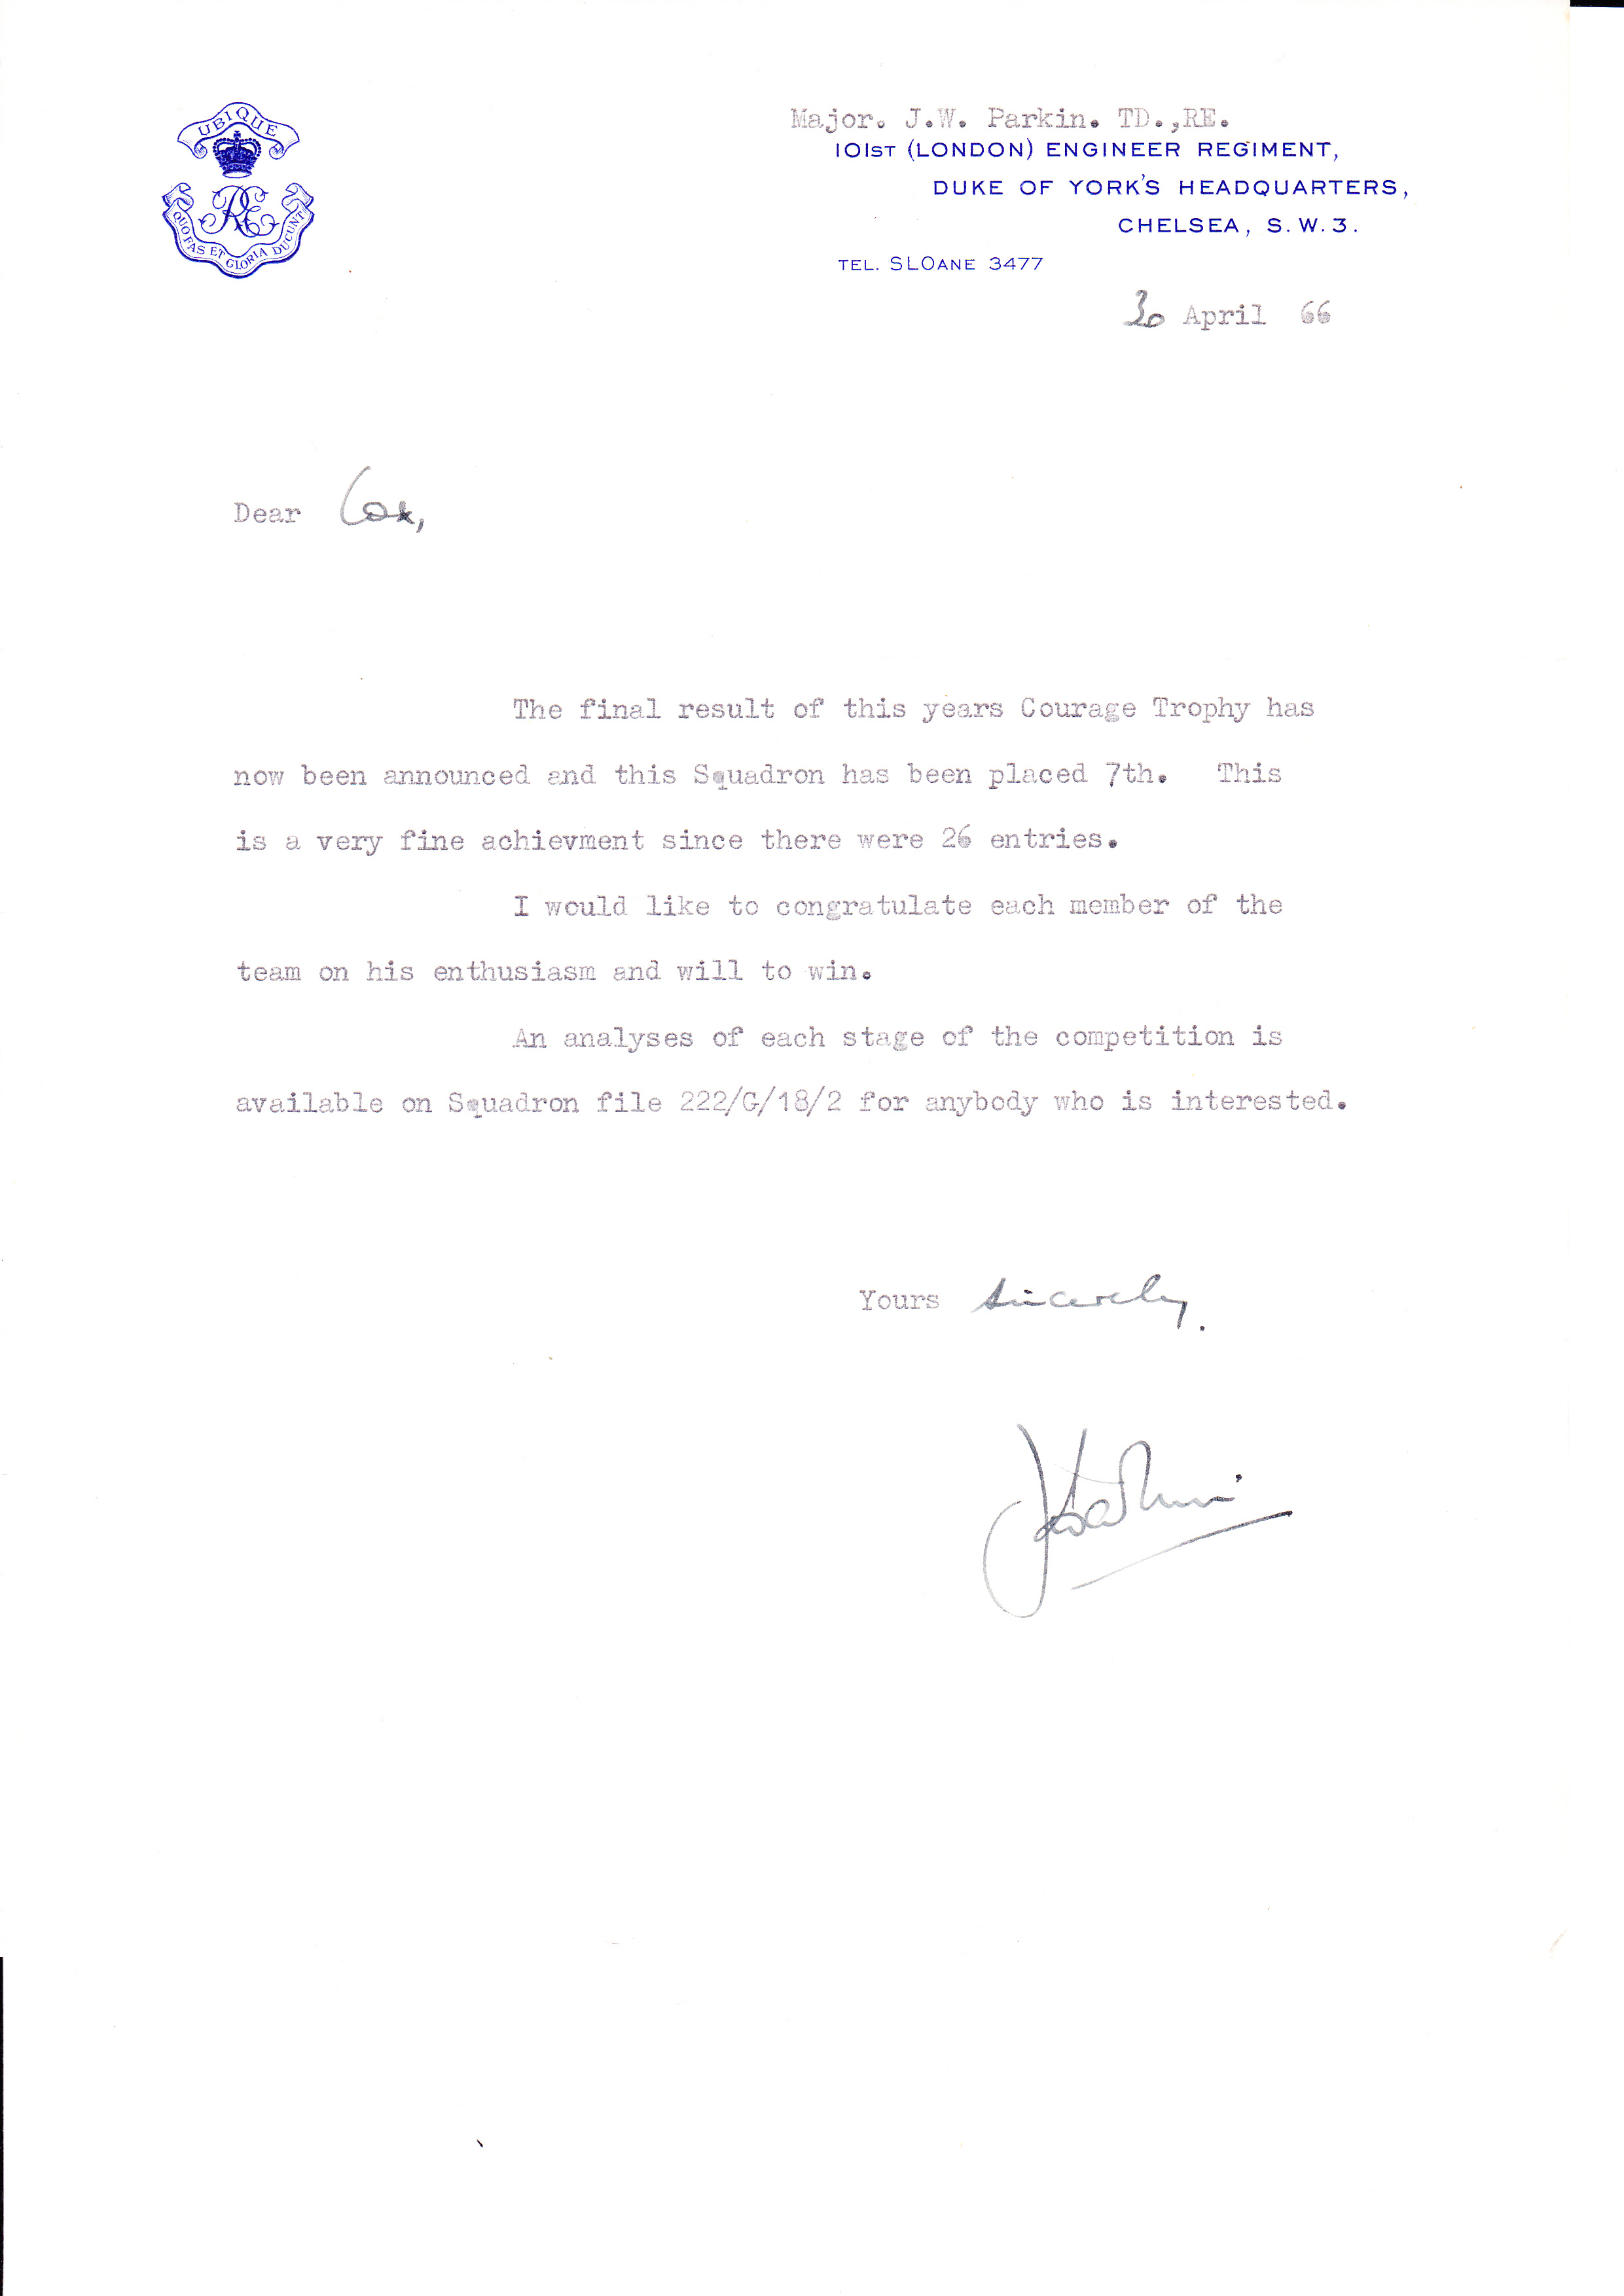 Courage Trophy letter 1967